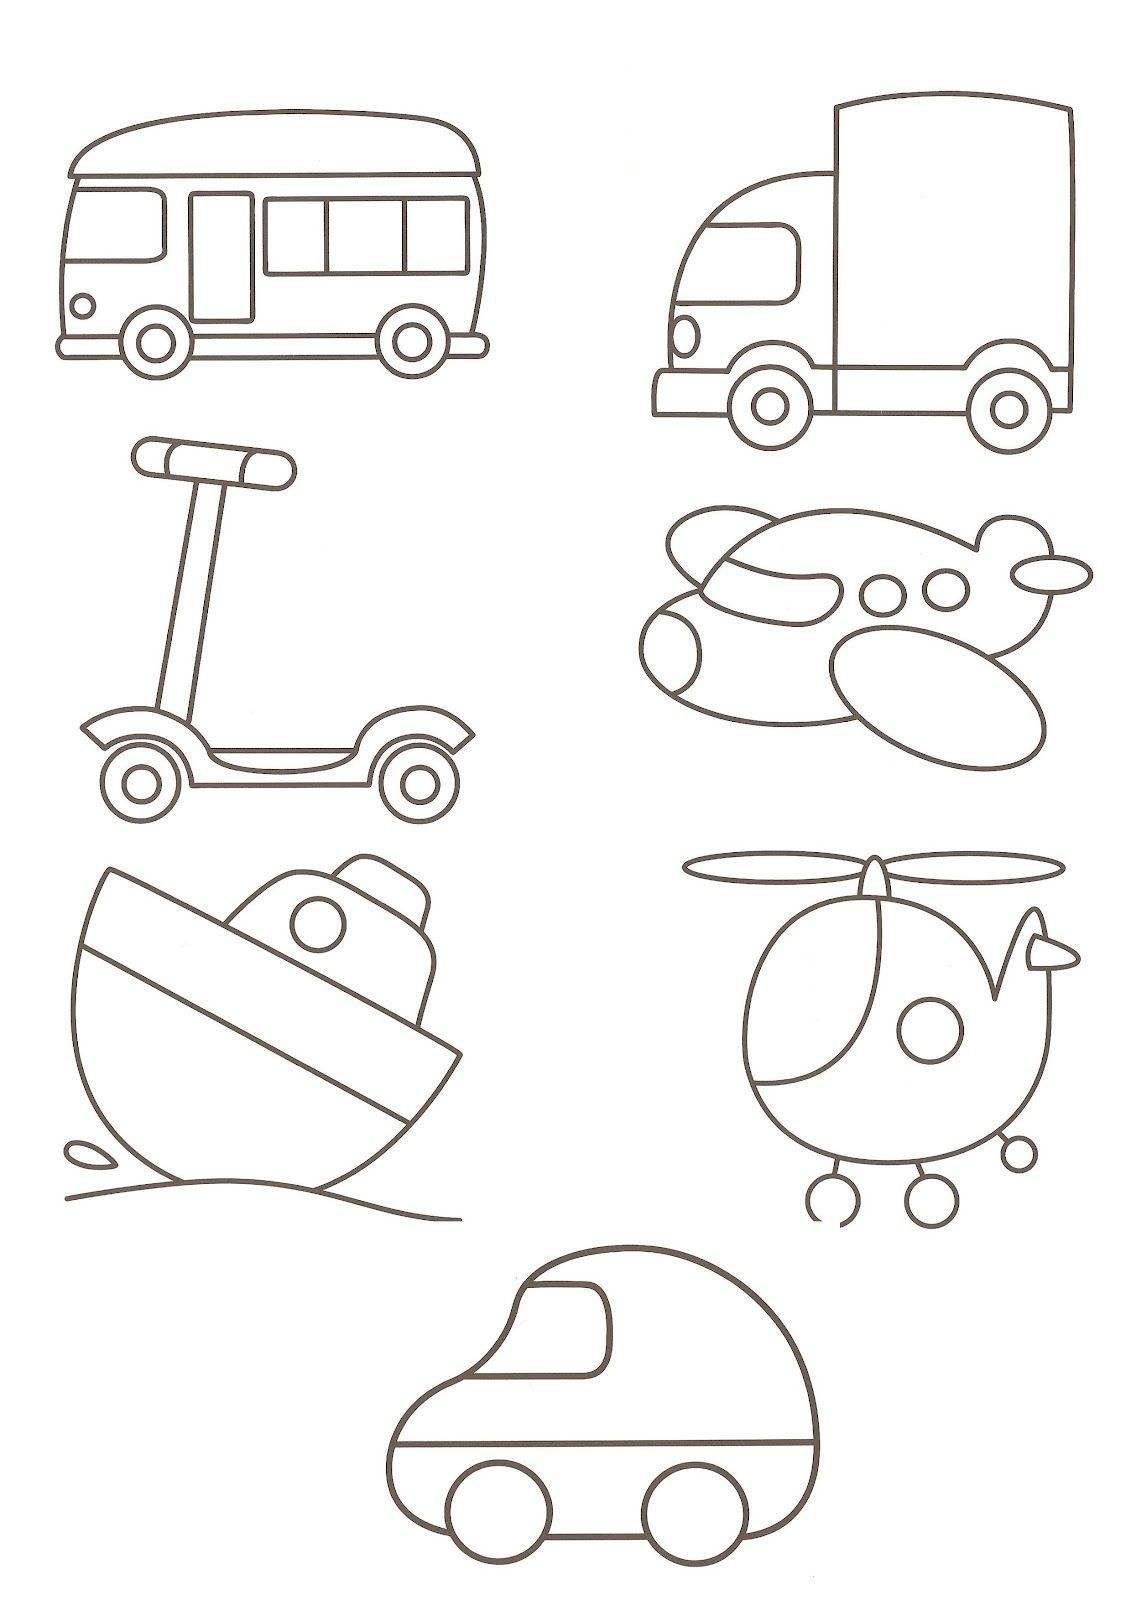 Print fortnite quiet on set coloring pages | Cool coloring pages ... | 1600x1131